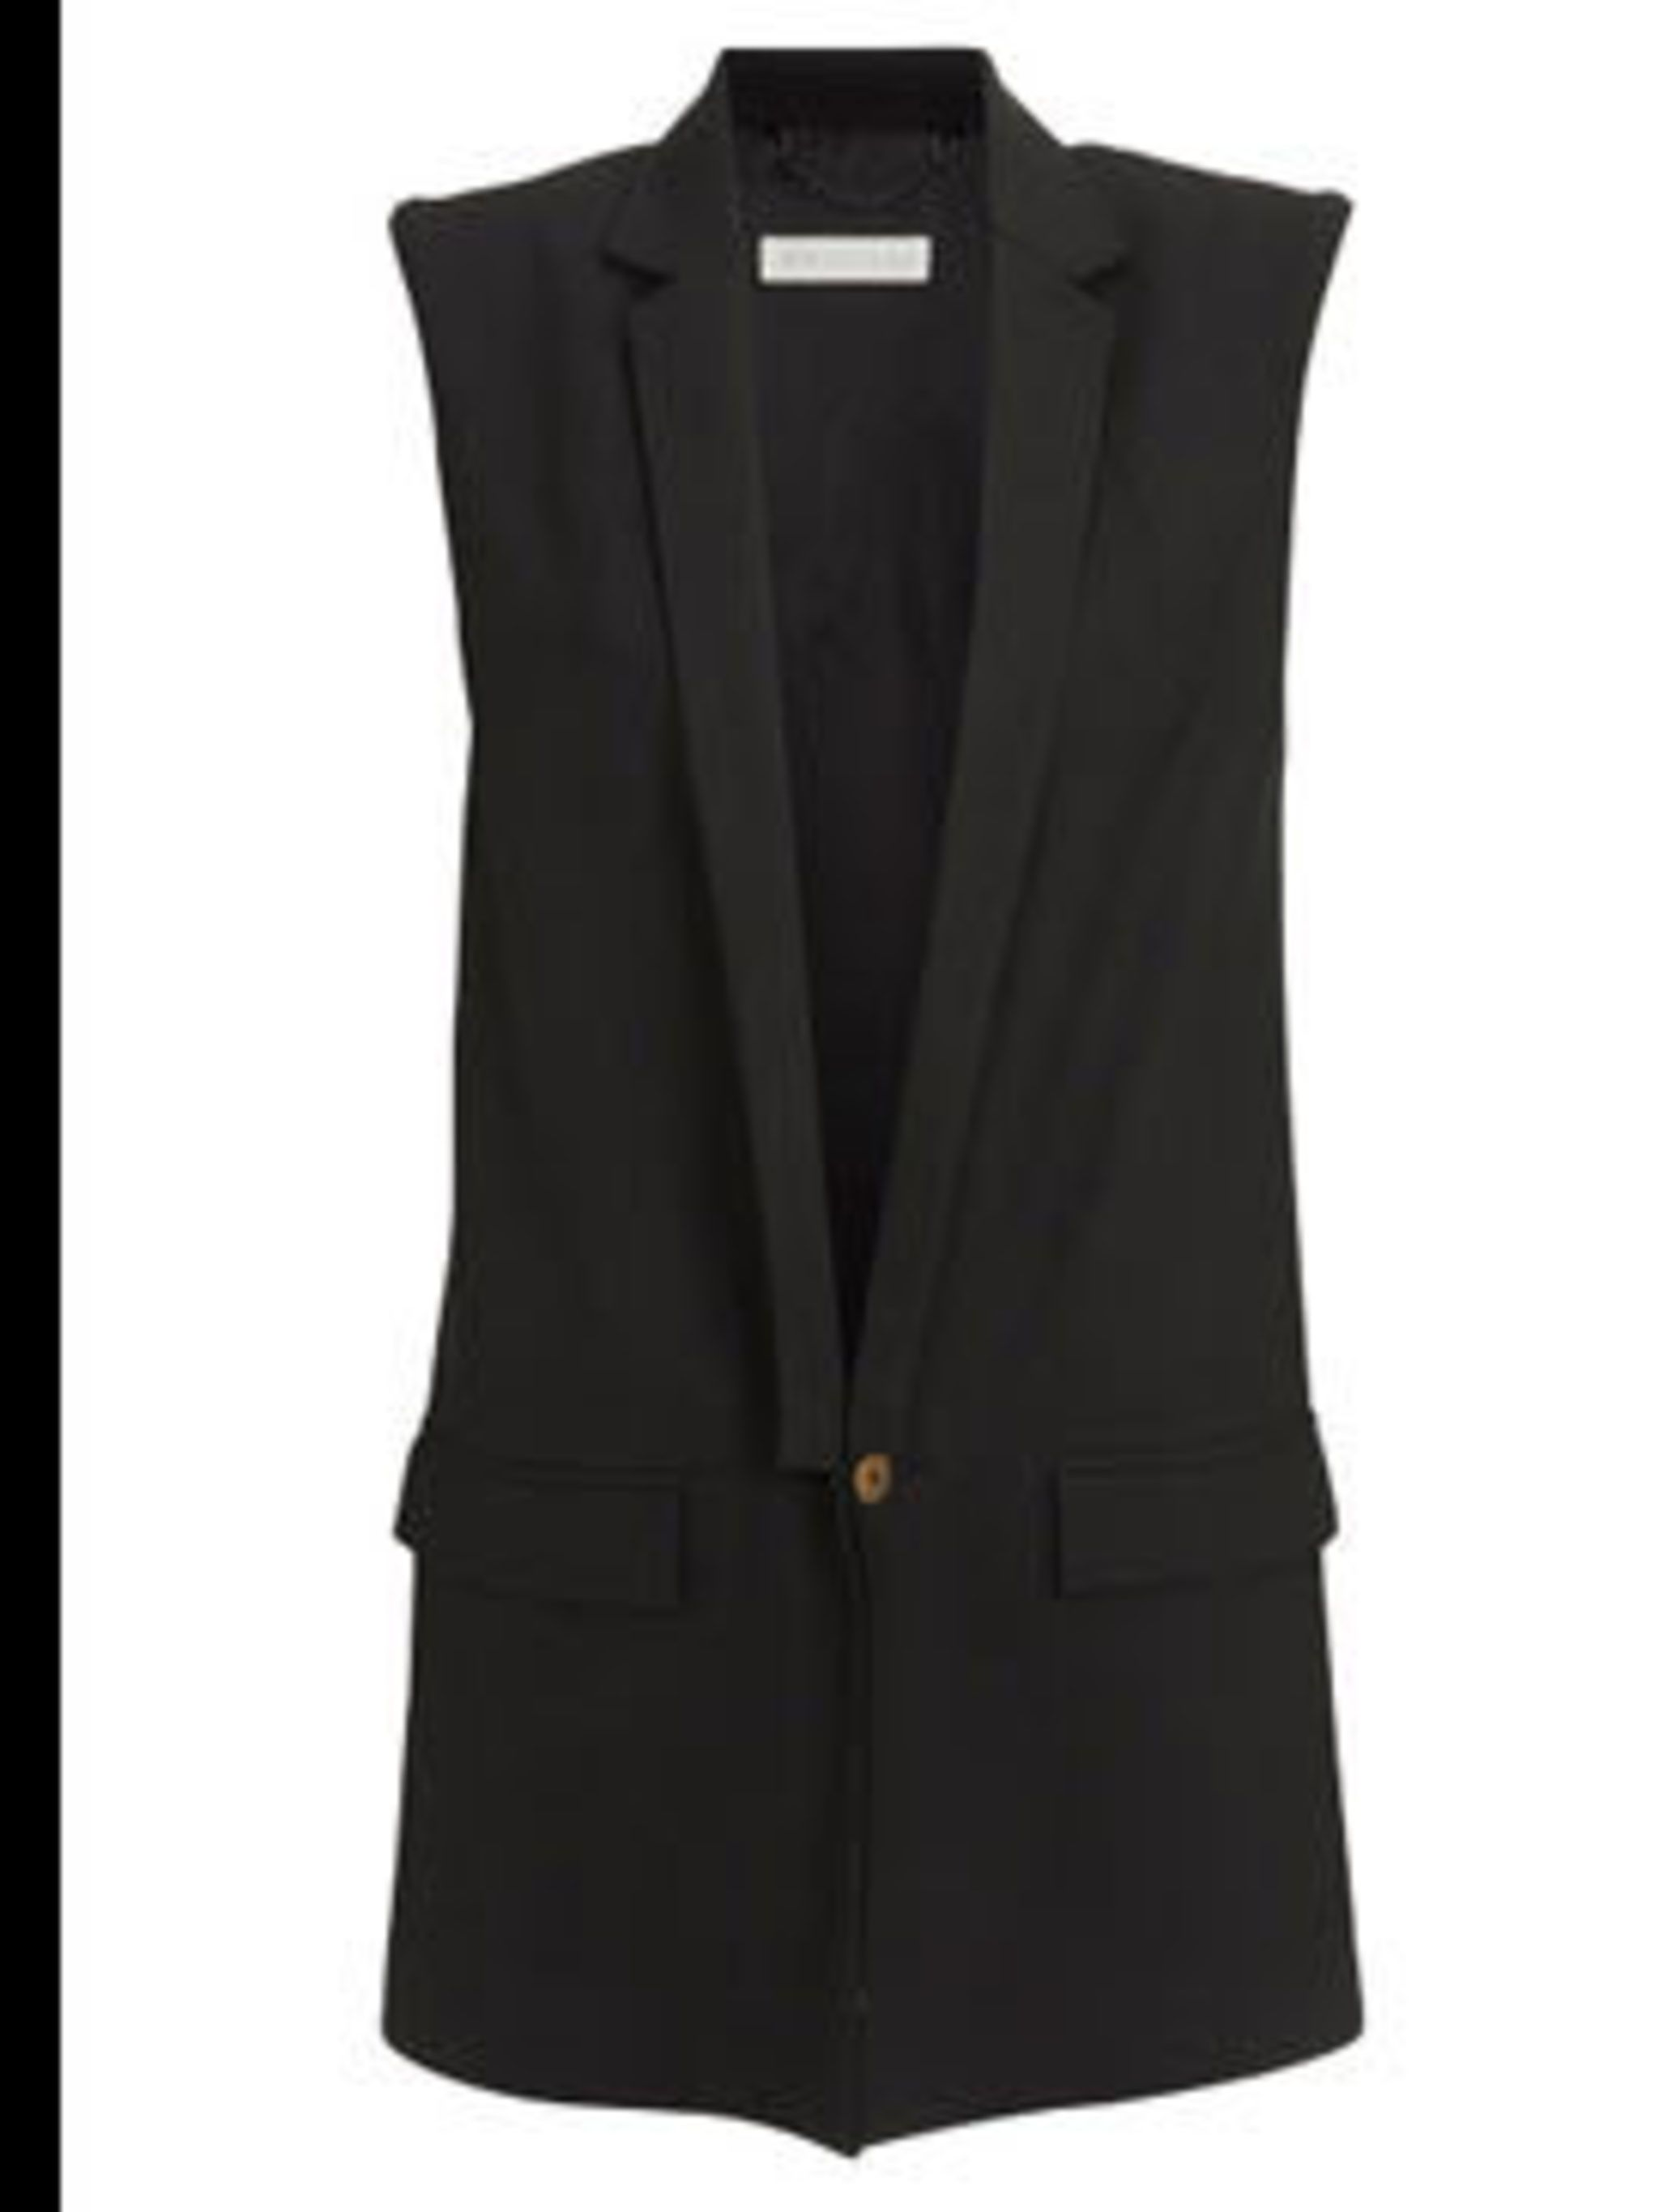 "<p>Sleeveless Blazer, £130 by <a href=""http://www.whistles.co.uk/fcp/product/whistles/newin/Sleeveless-Blazer/903000053723"">Whistles</a></p>"